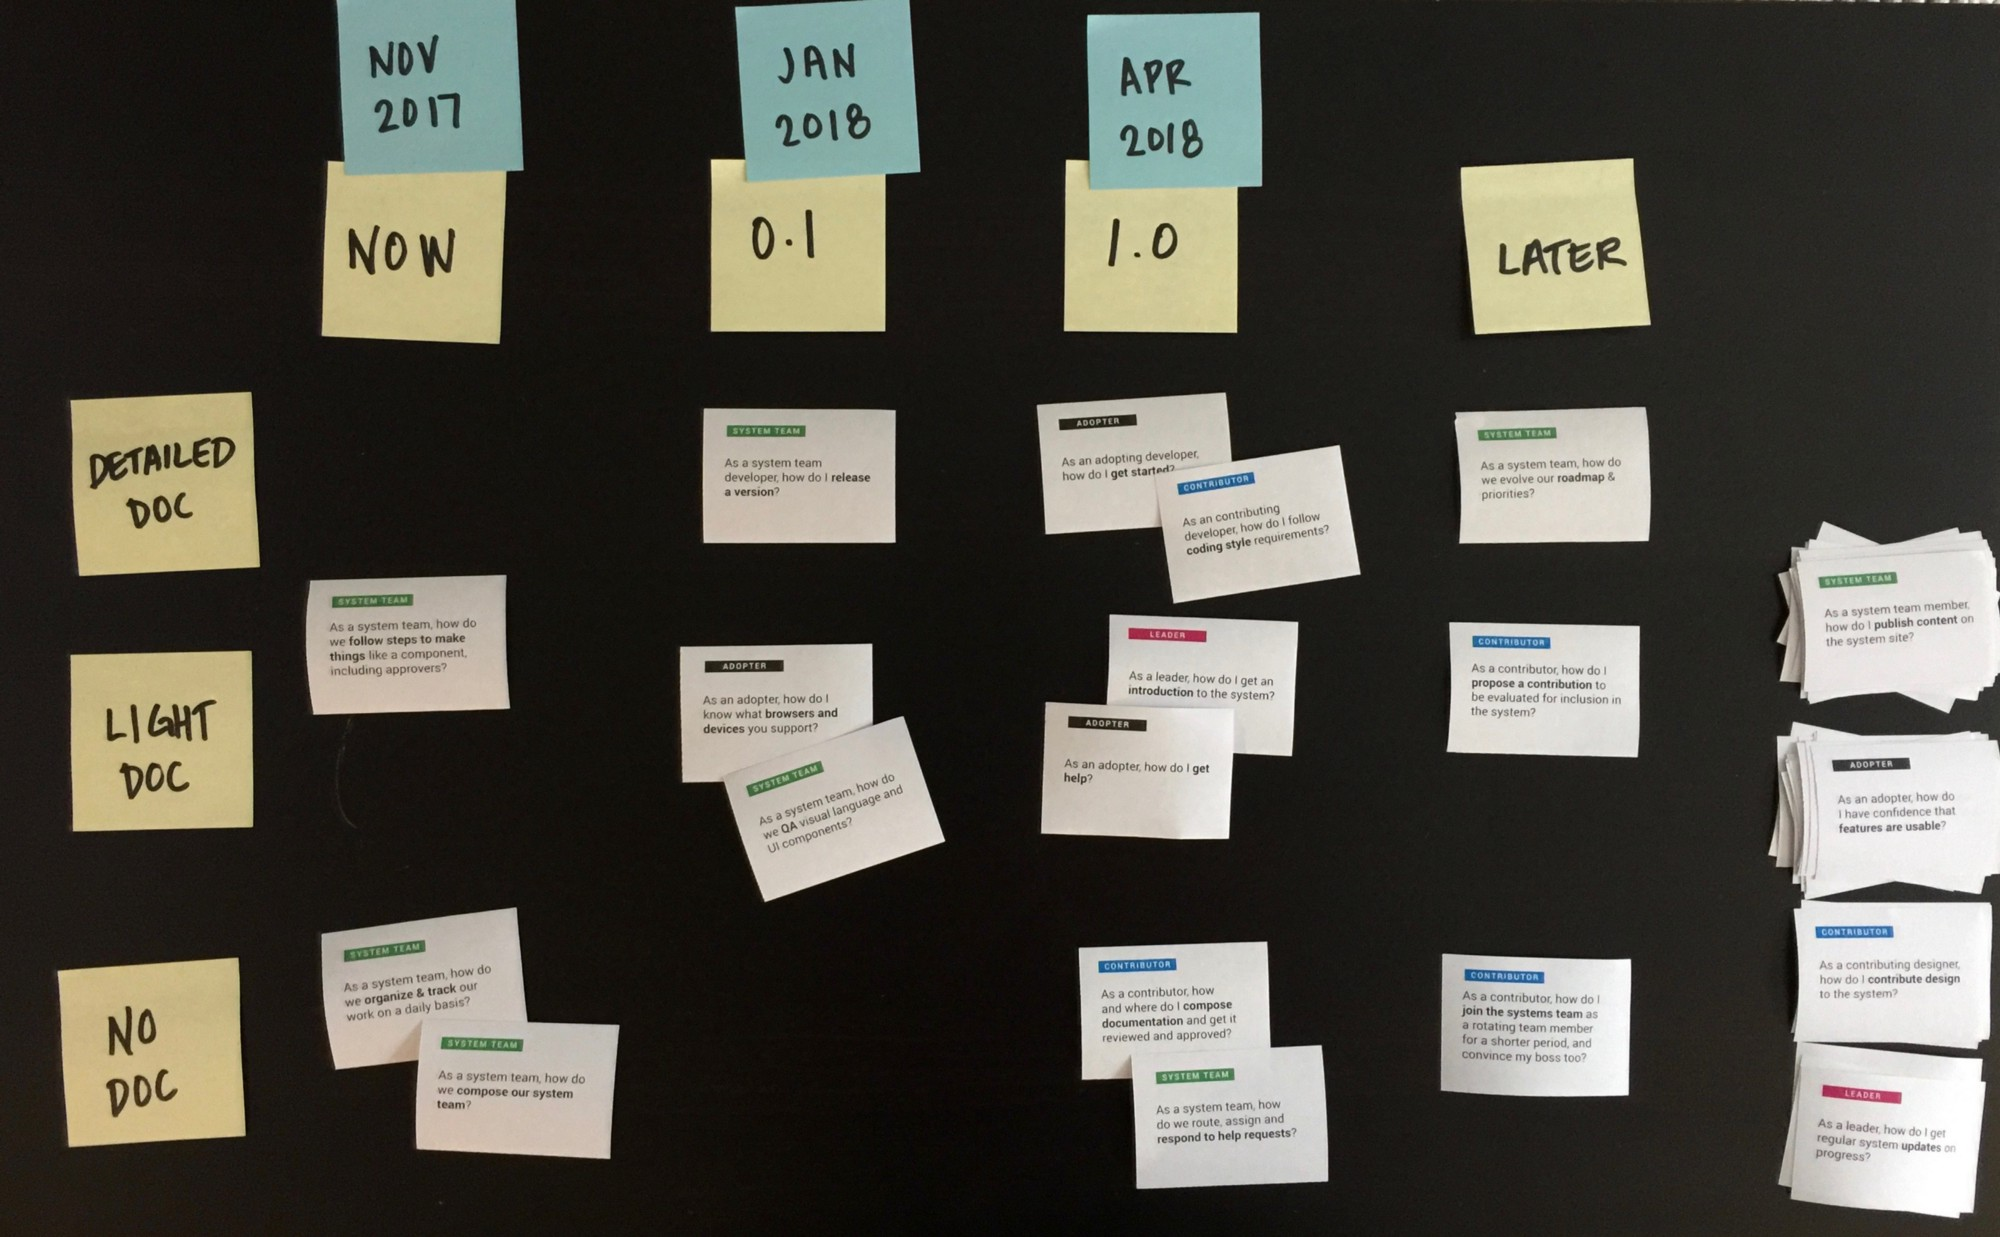 Photo of cards placed in a grid of milestones versus documentation levels of detail